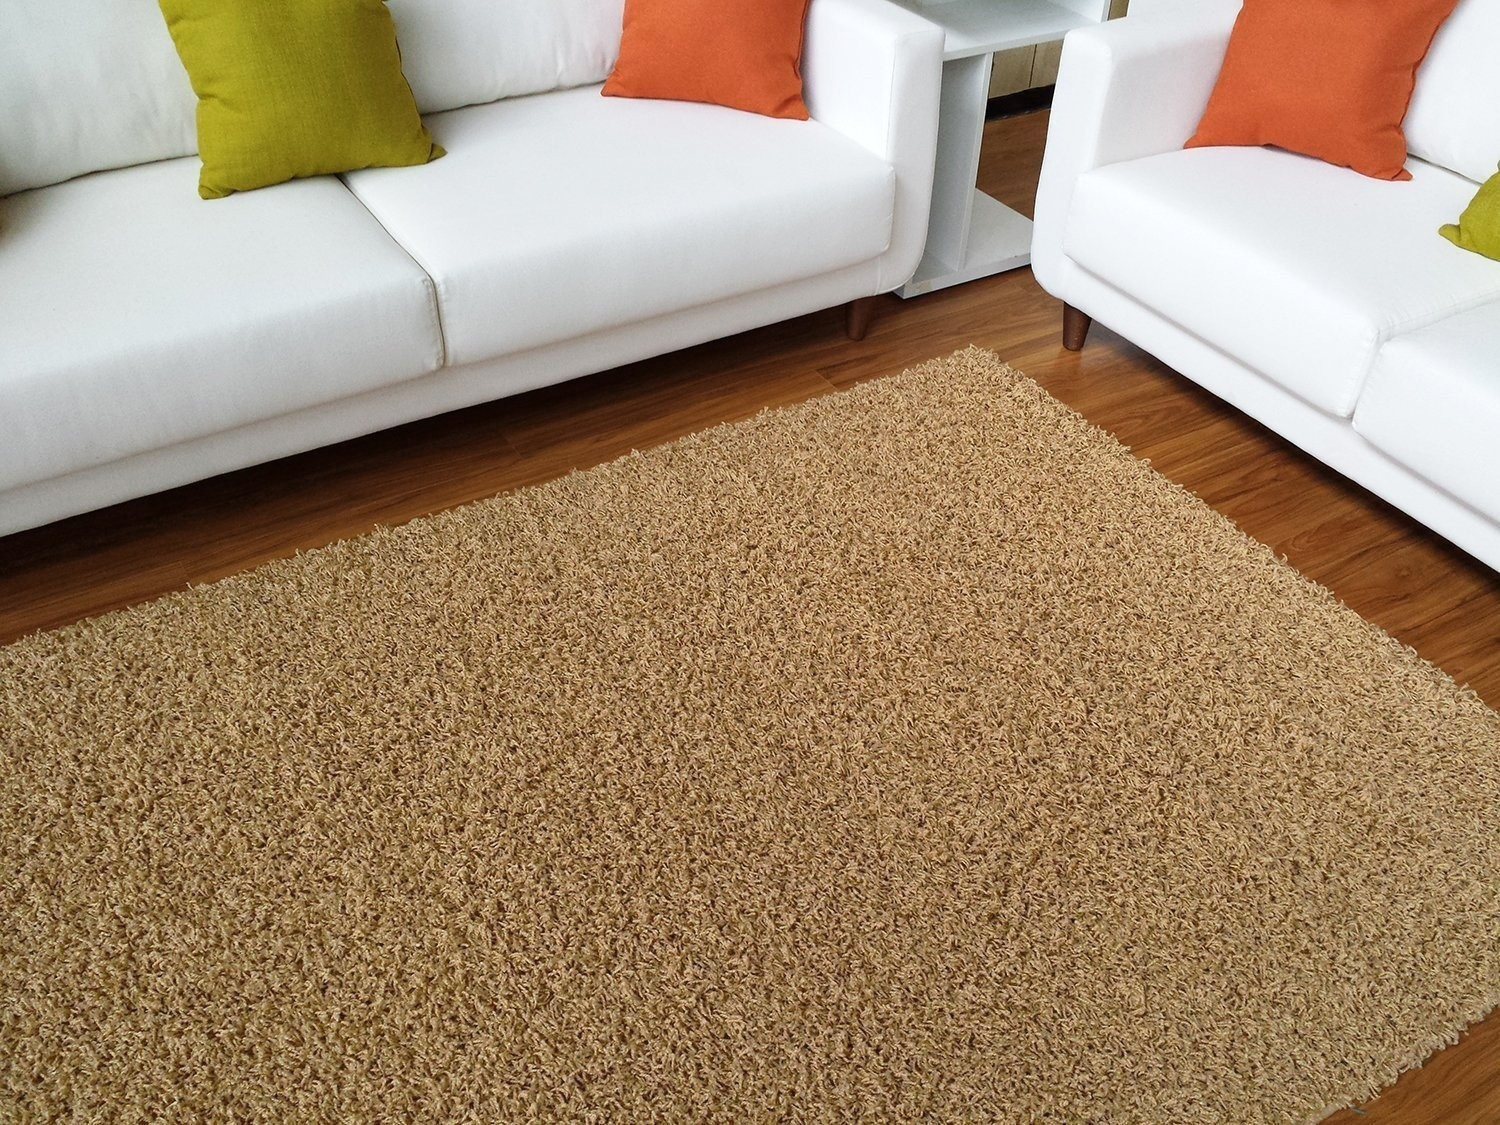 Lowes Carpet Installation Reviews